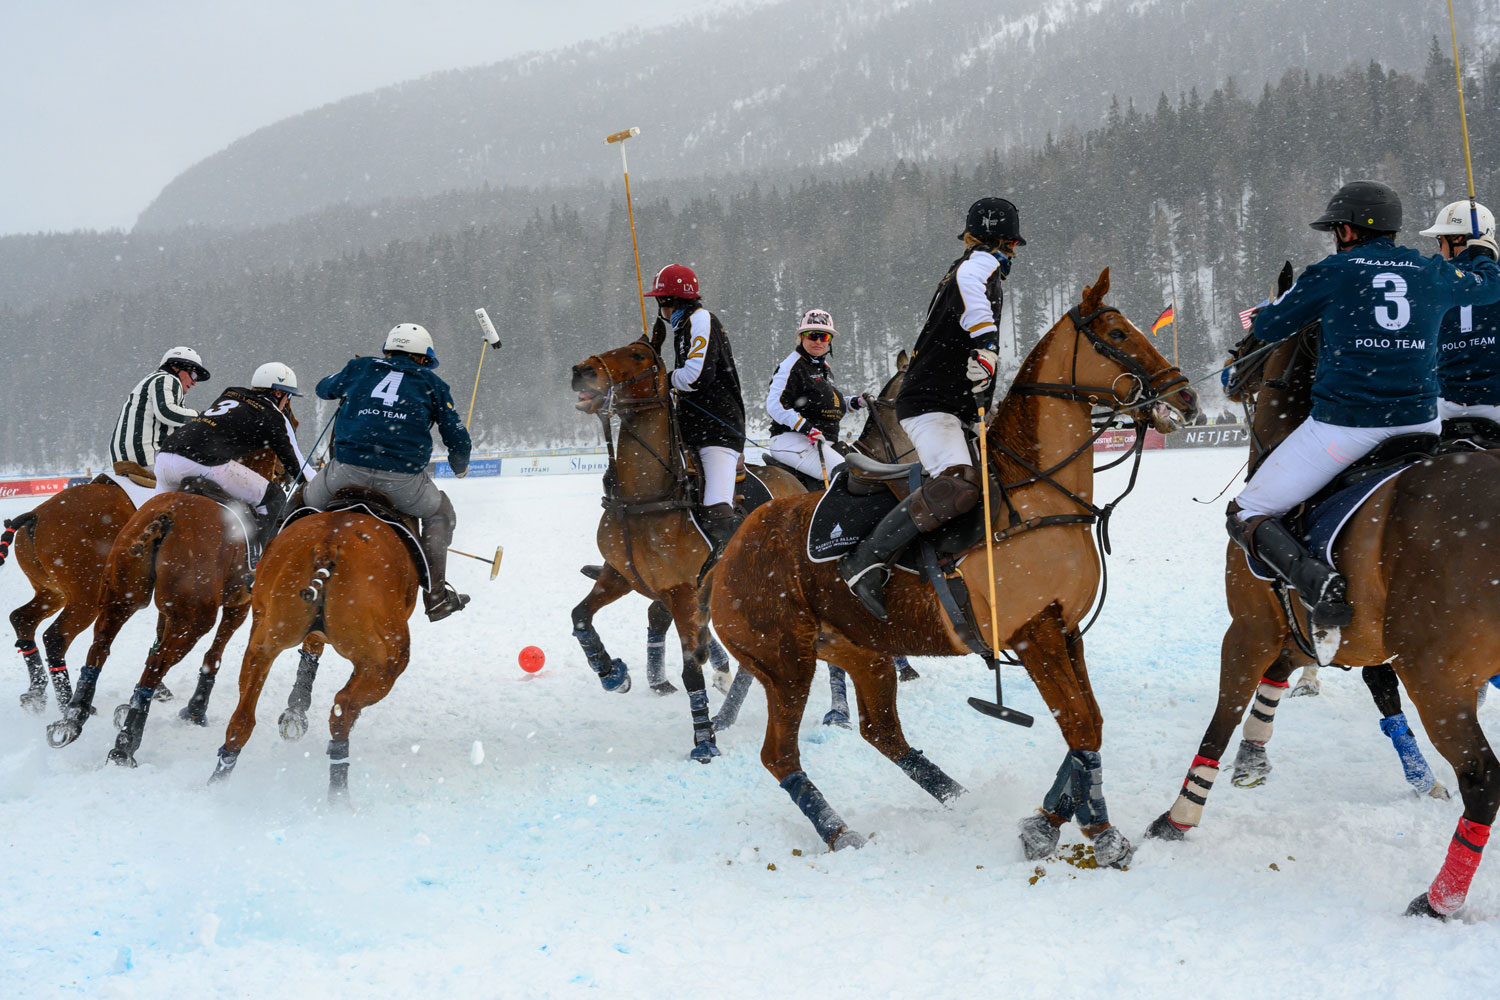 The 35th Snow Polo World Cup St. Moritz Was A Tournament Of Firsts